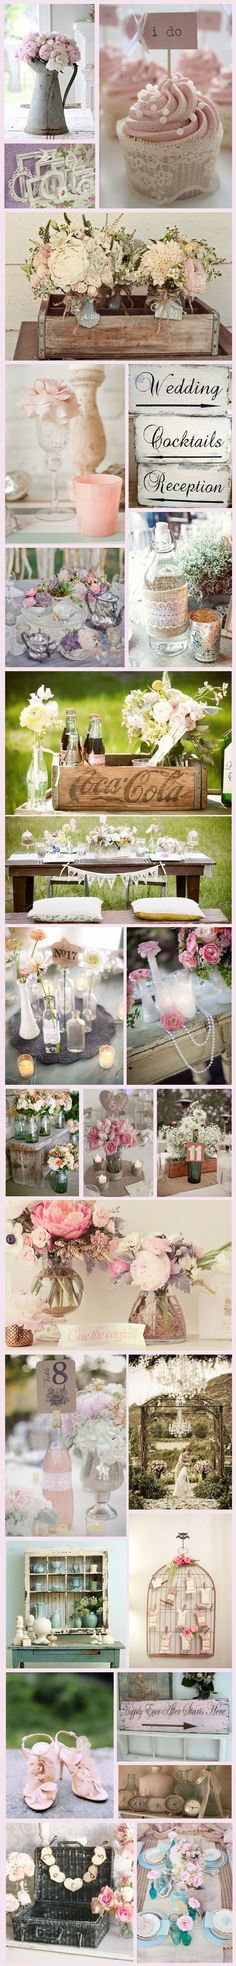 Shabby Chic wedding cocos future wedding?